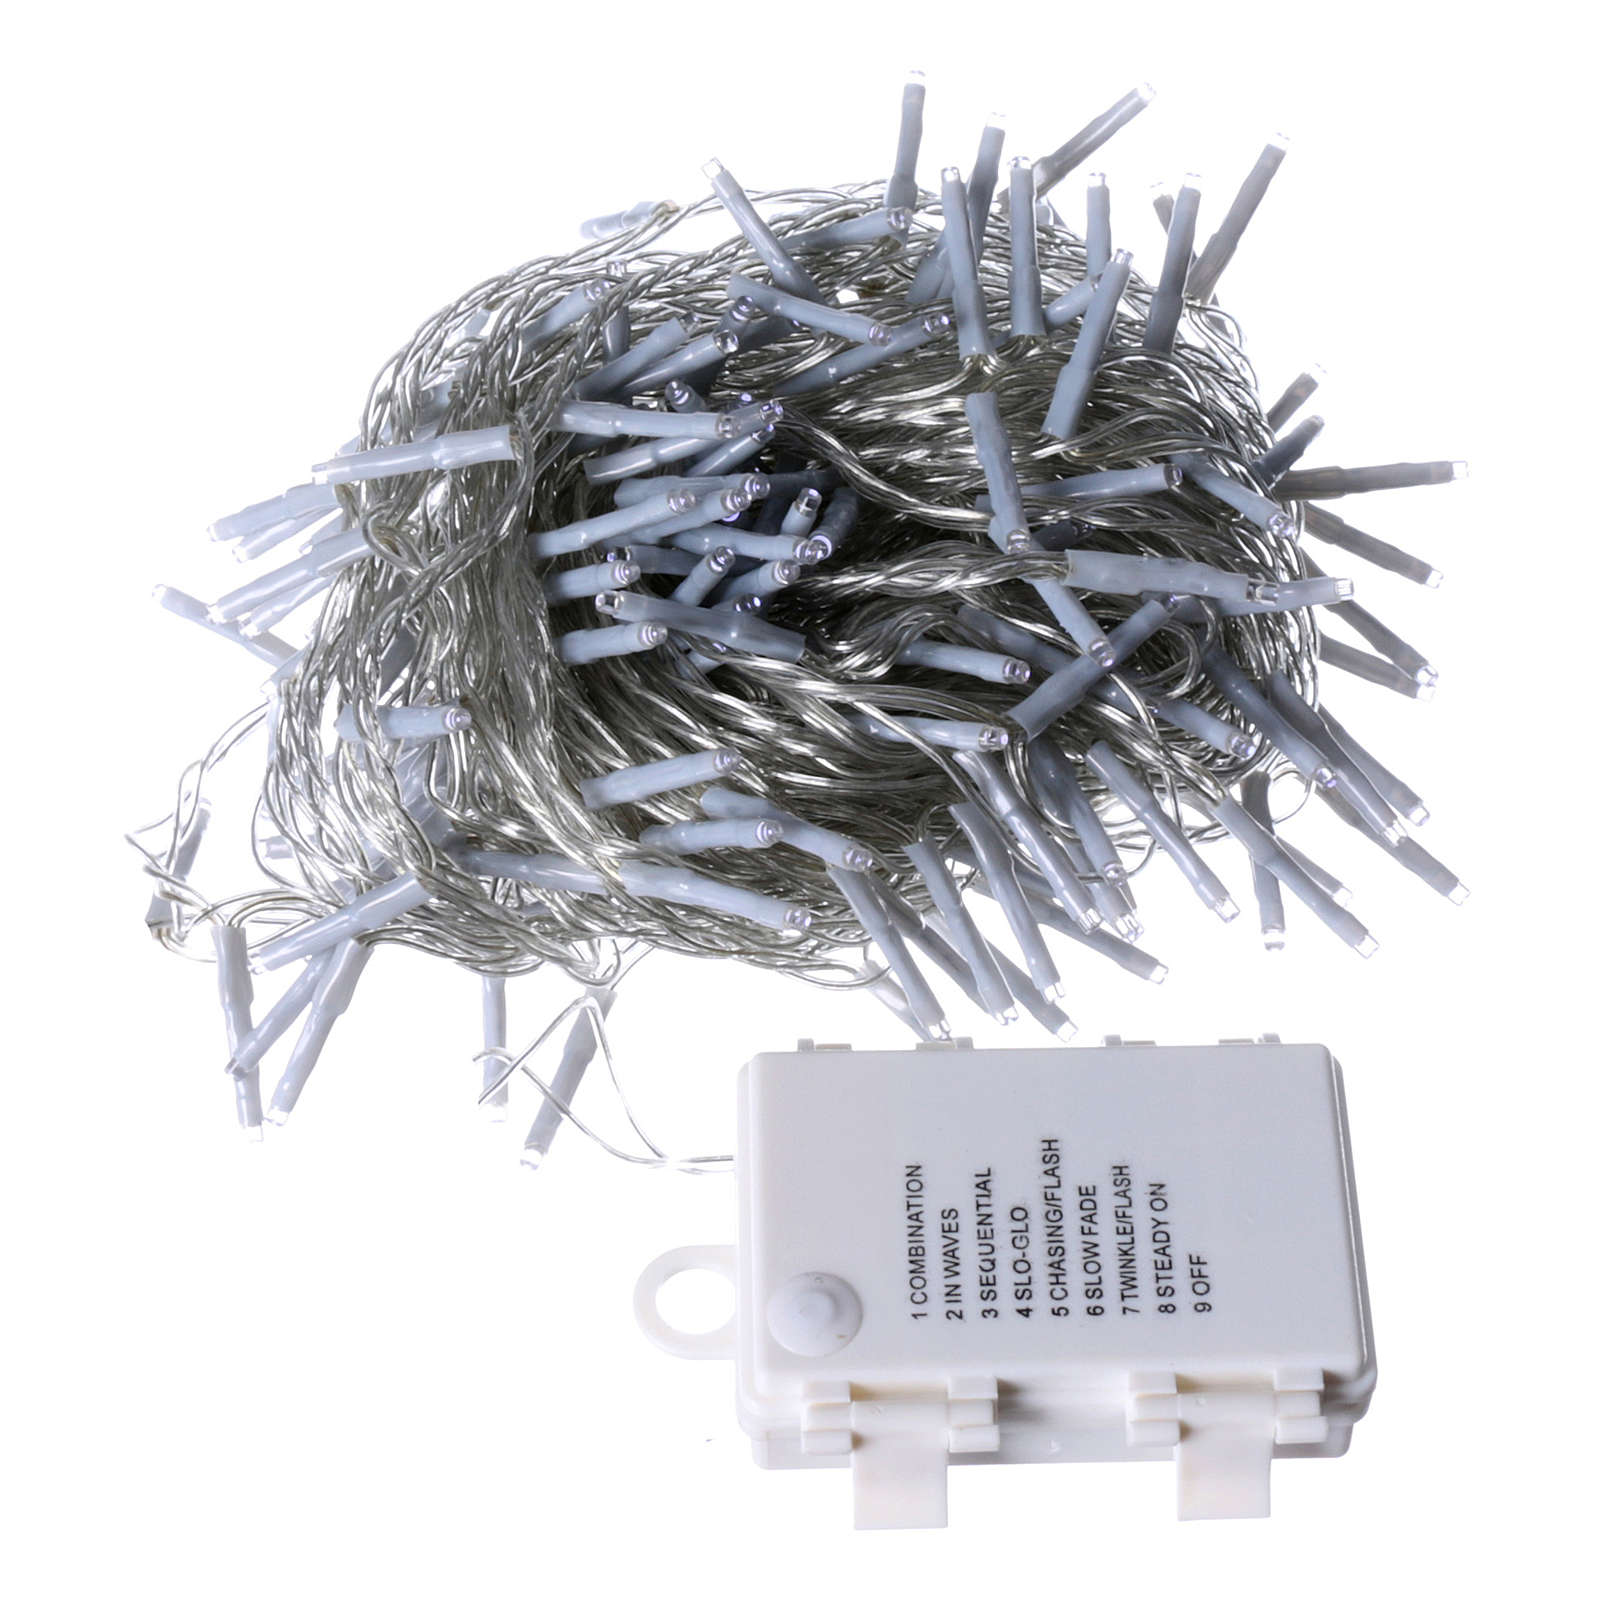 Bright Christmas cable 240 leds cold white with memory and timer external use with batteries 3